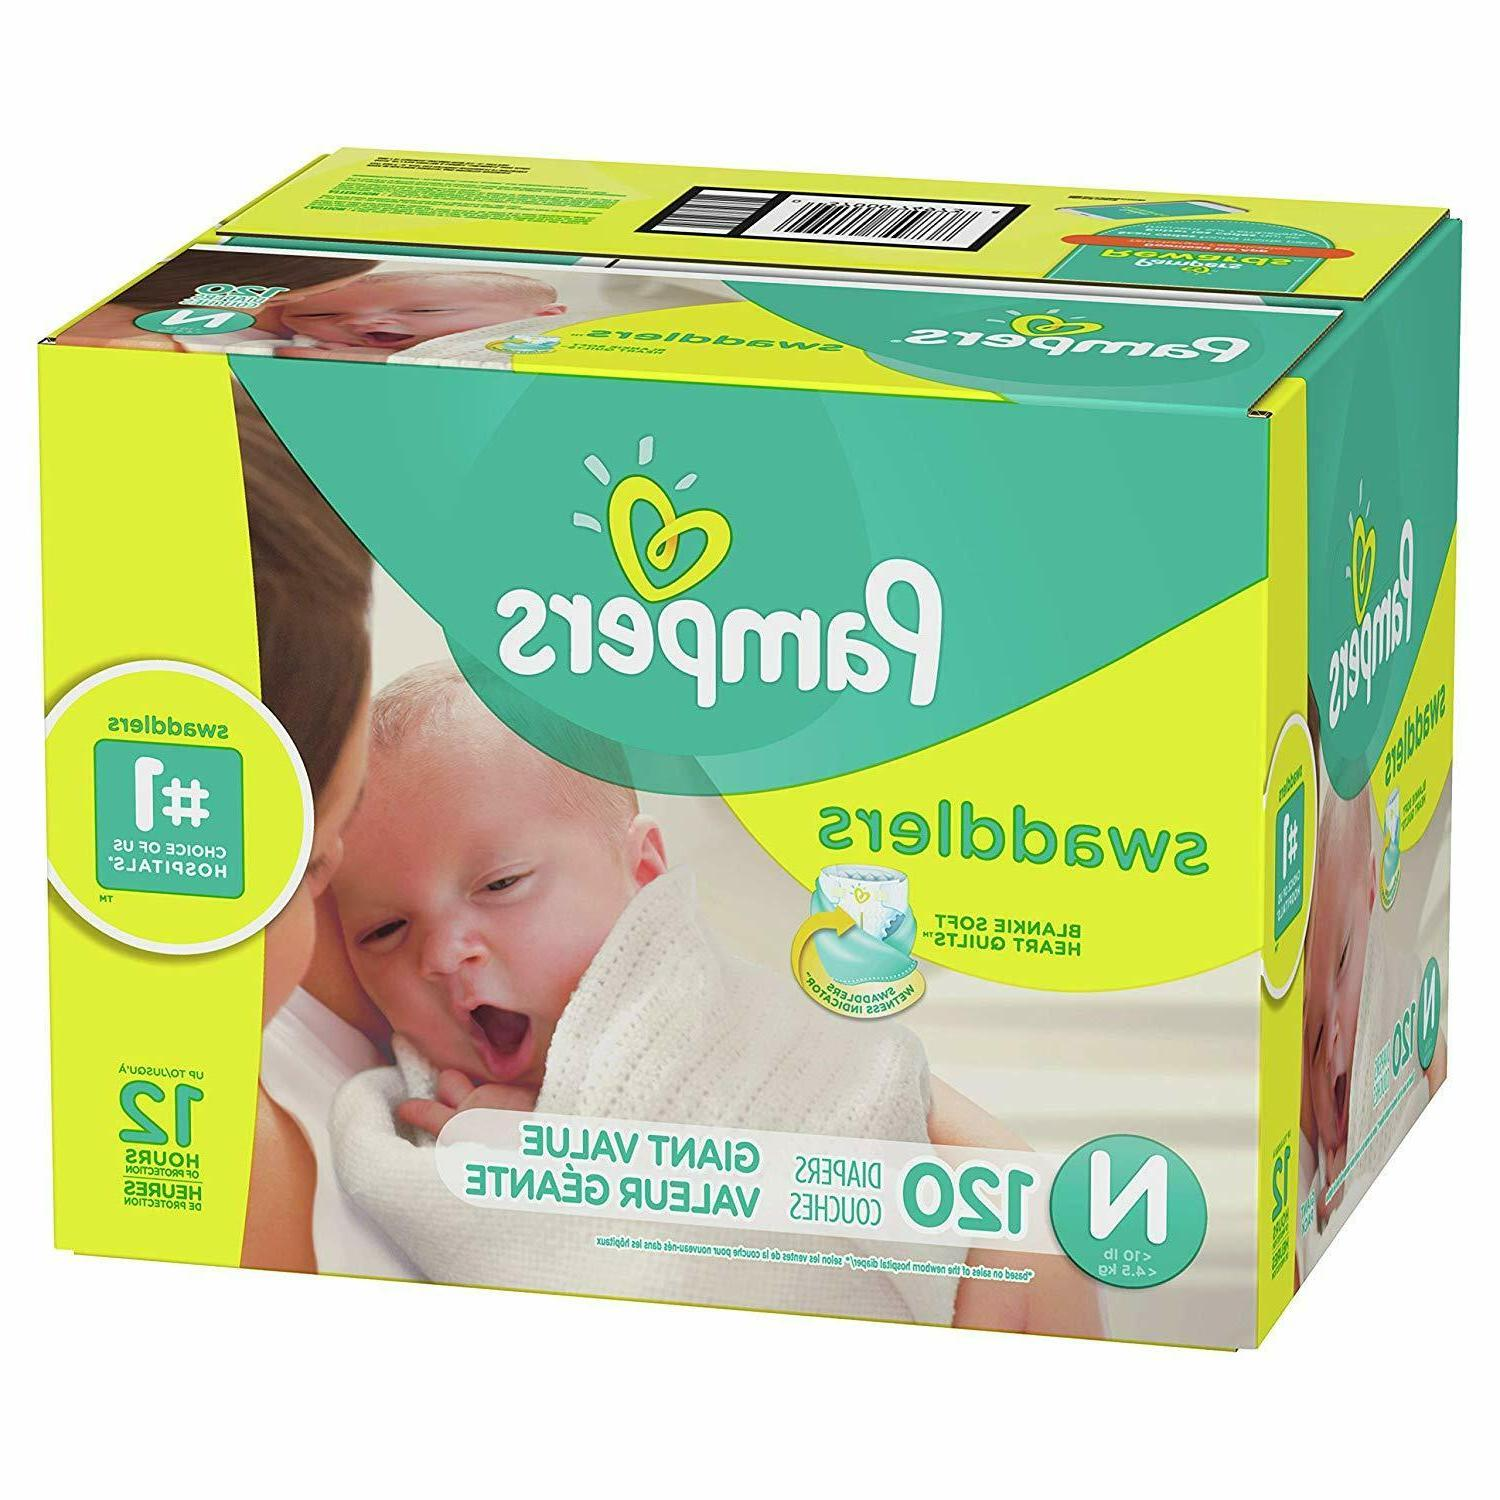 Pampers Count Disposable Diaper